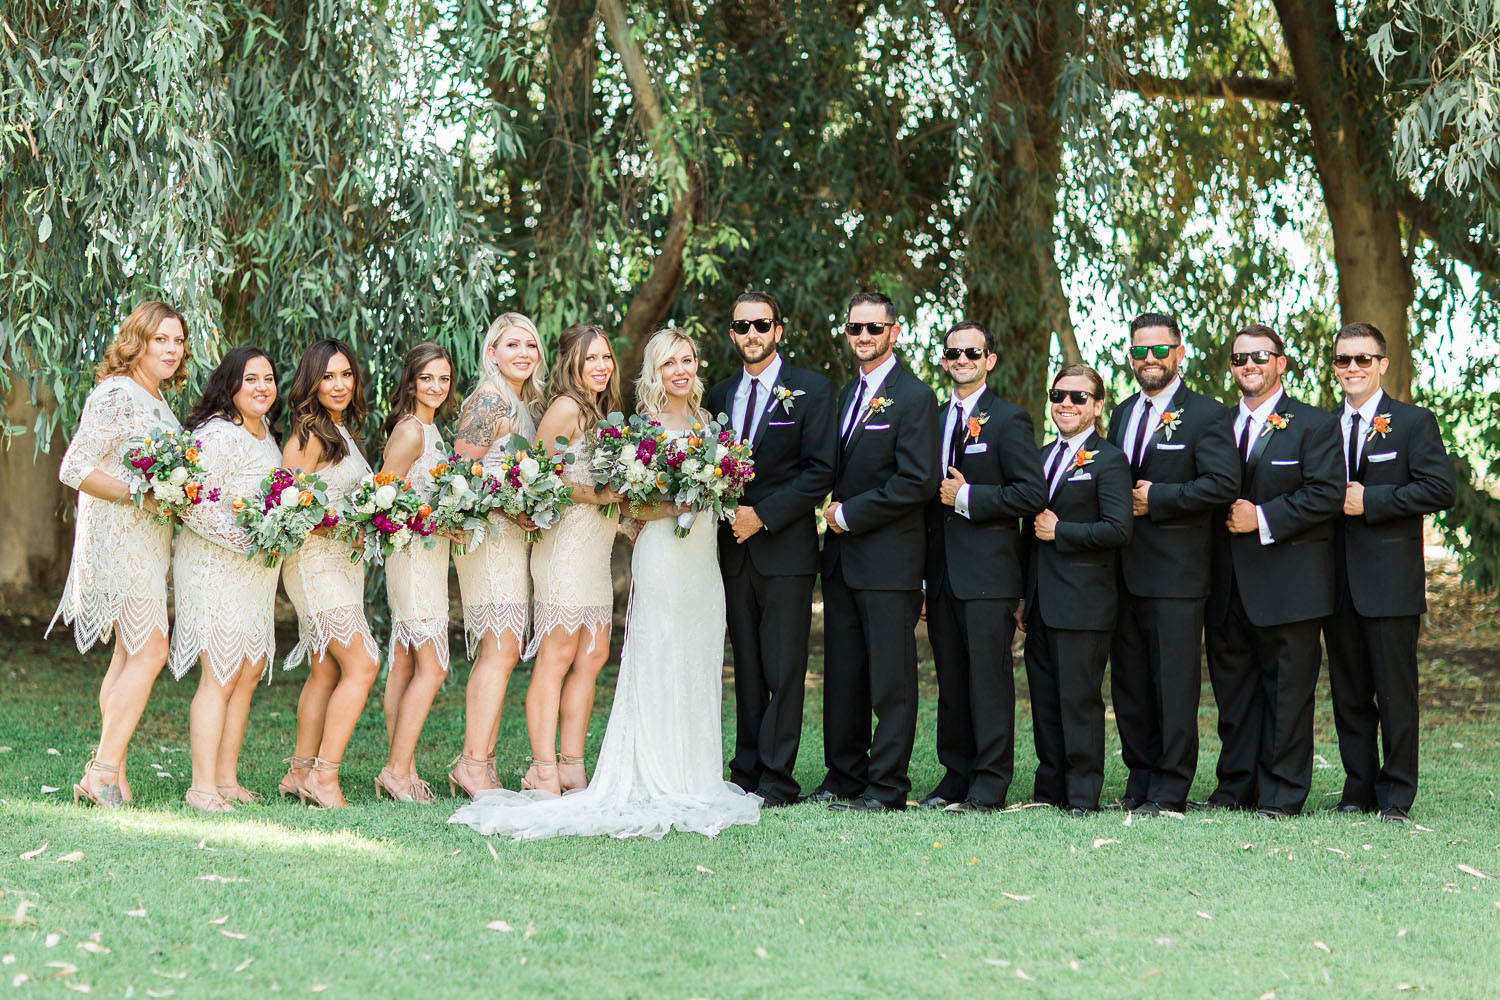 The Photege - Elegant Boho Wedding on Suburu Farm in Bakersfield California- Cassie and Darin Buoni-2995